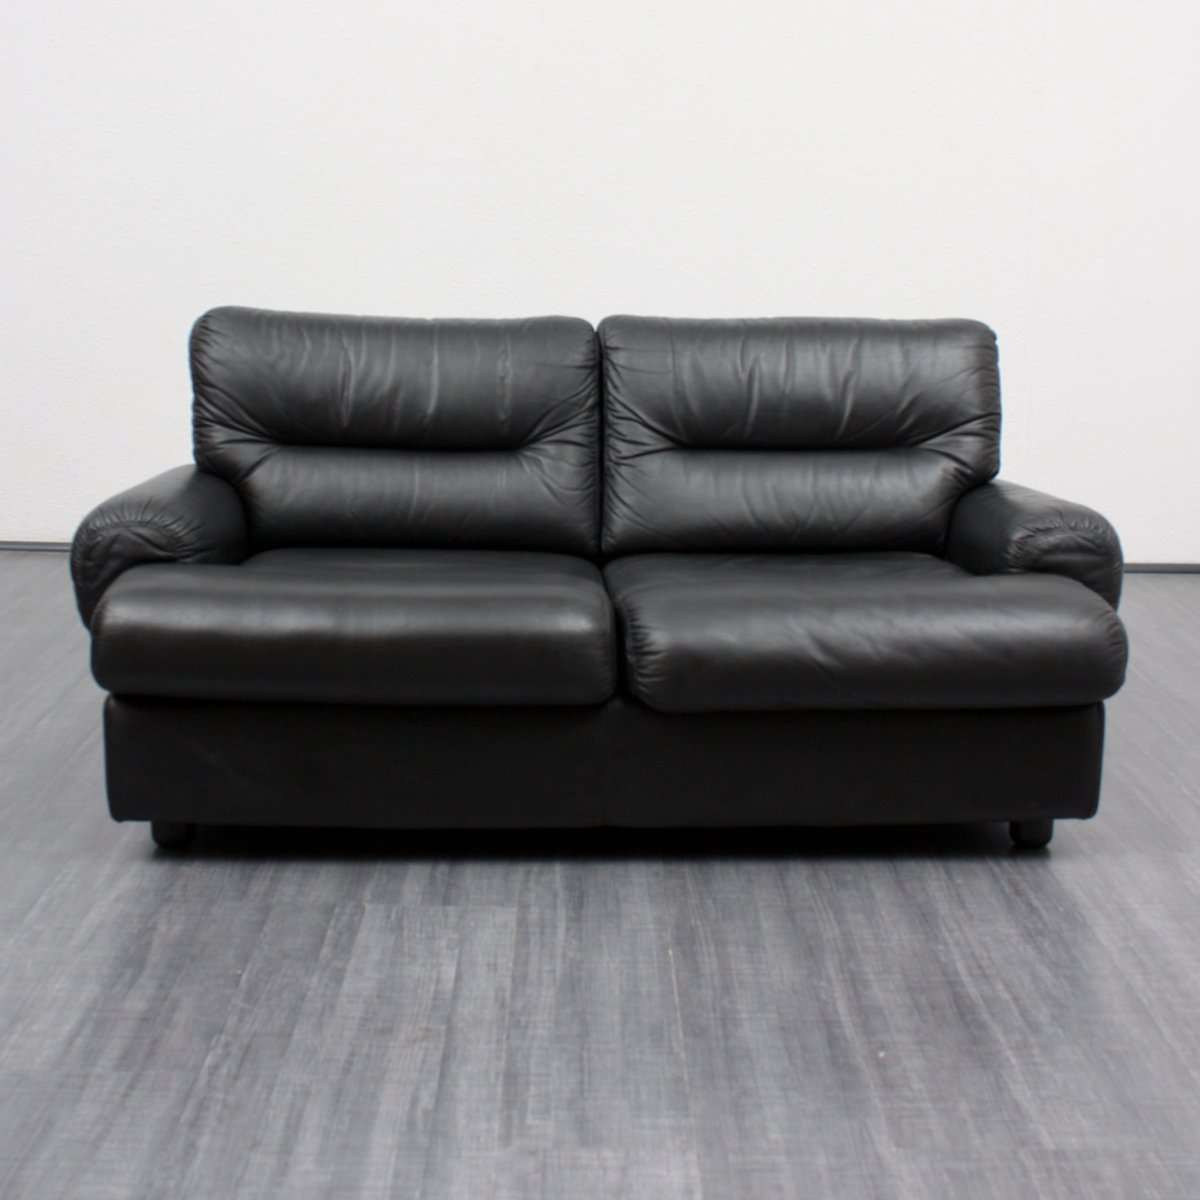 Vintage Black Leather 2 Seater Lounge Sofa 1970s For Sale